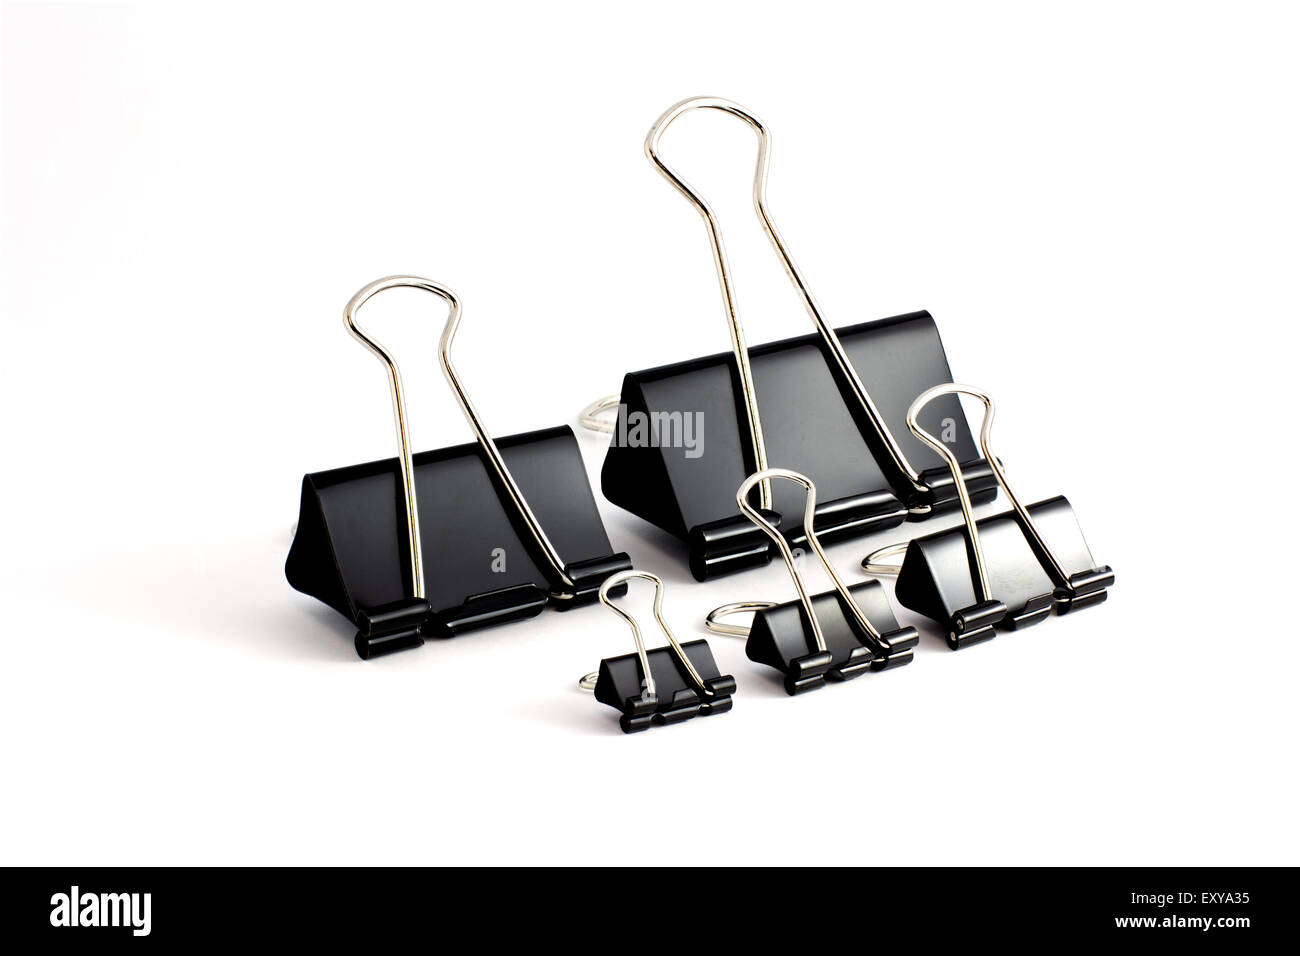 Different sizes of bulldog clips - Stock Image